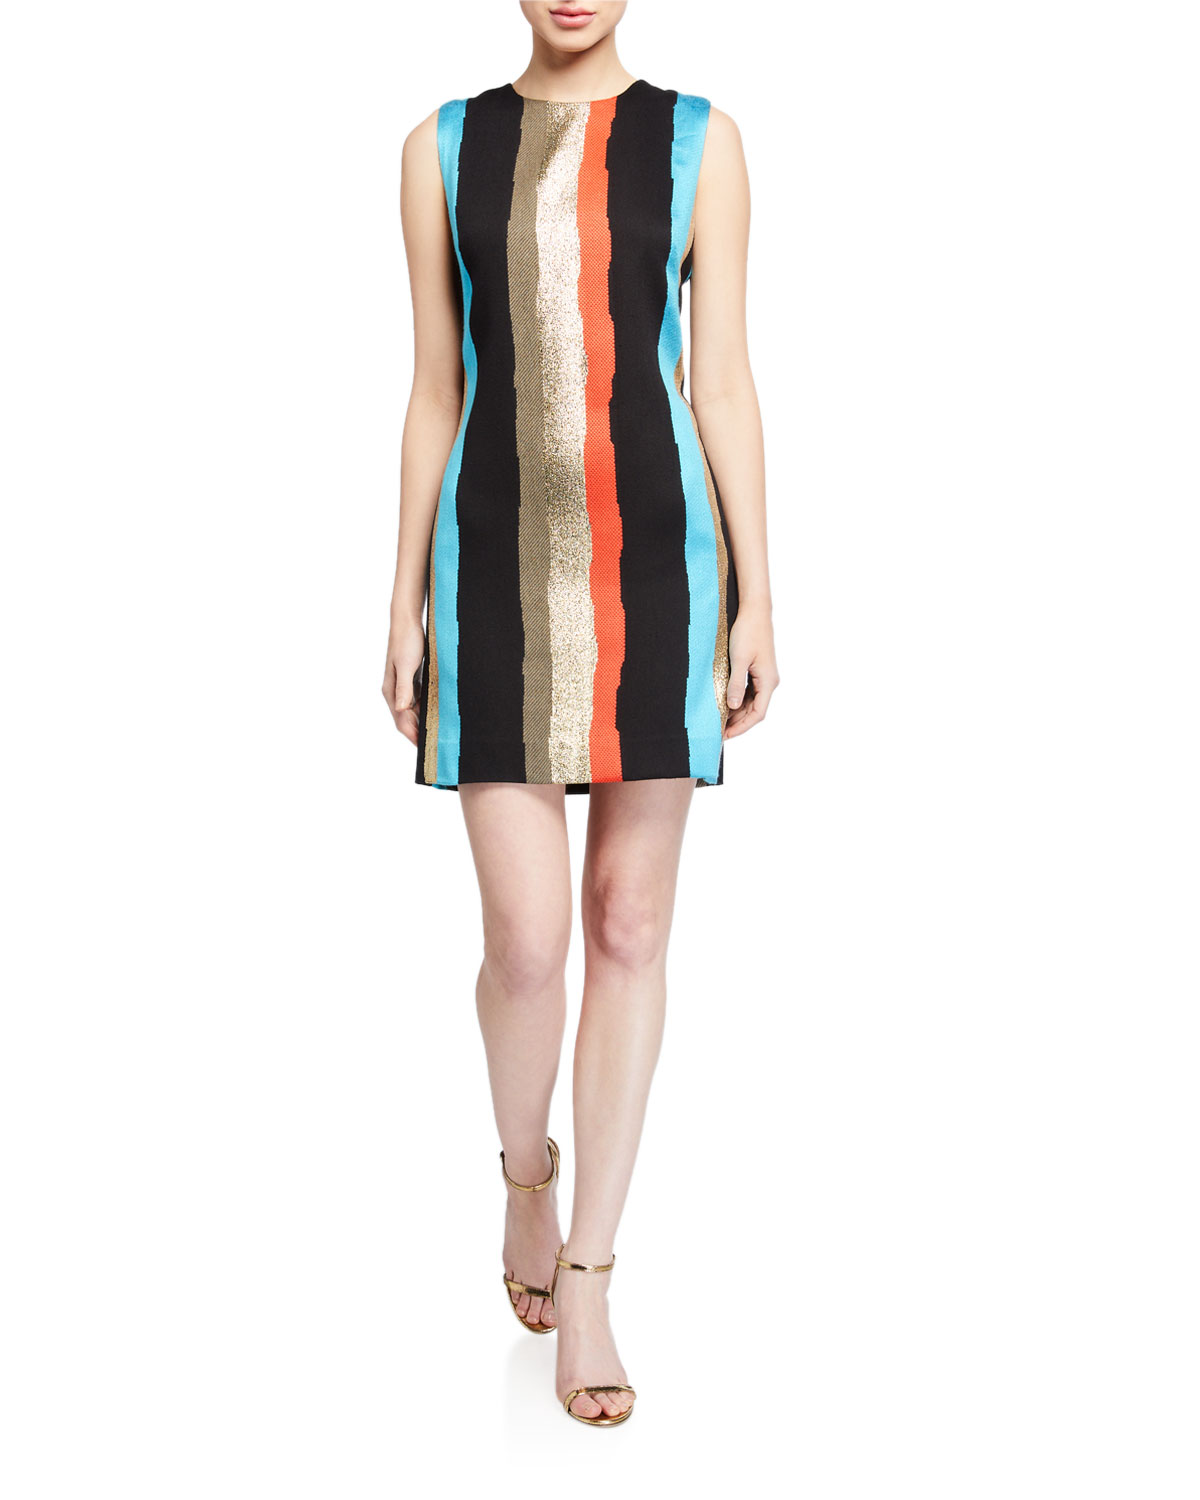 Milly Gina Graphic Tweed Sleeveless Dress In Multi